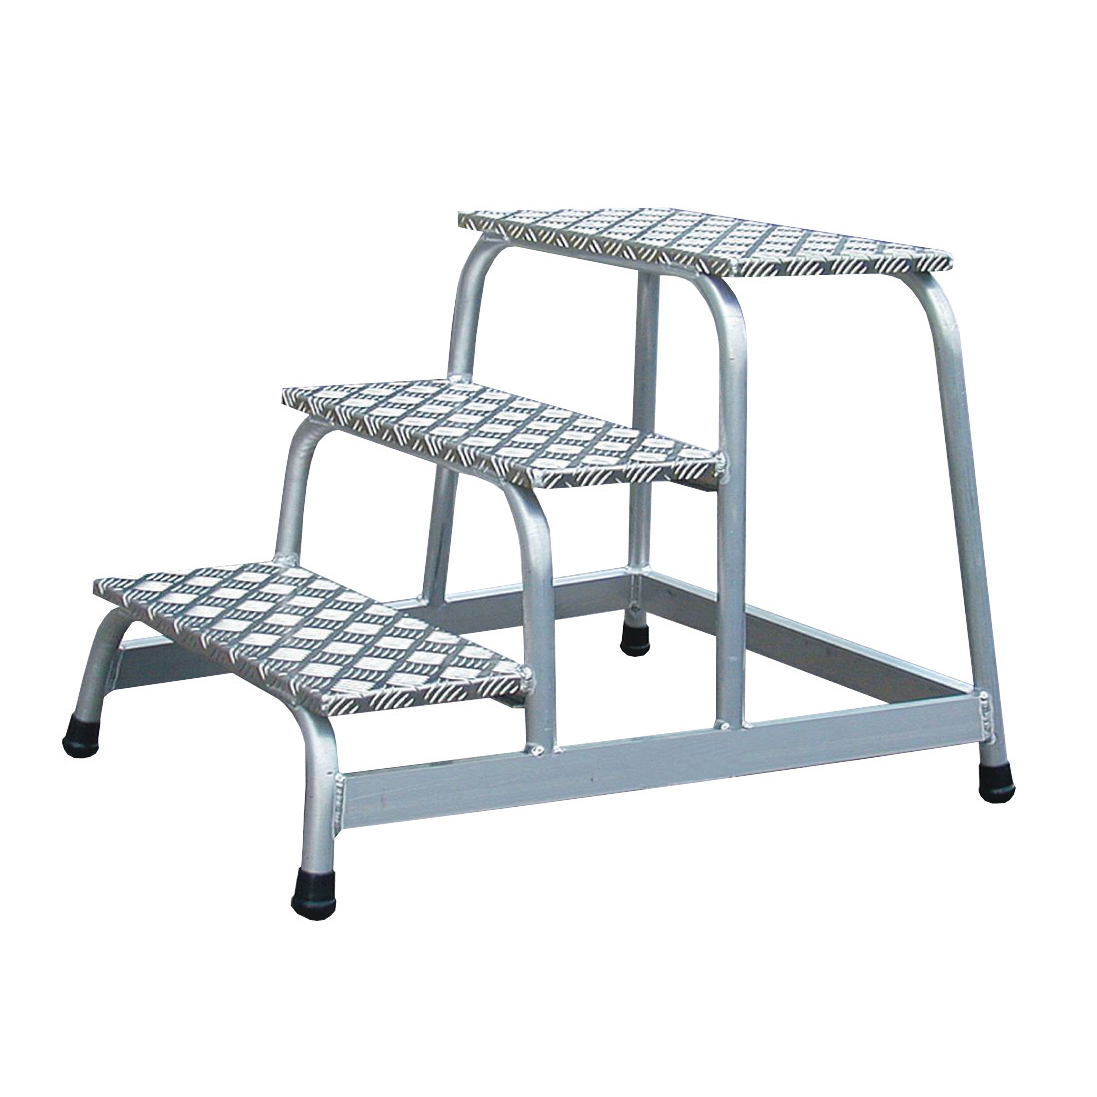 Ladders Platform Light Duty Slip Resistant Aluminium 2 Tread W520xD305xH400mm